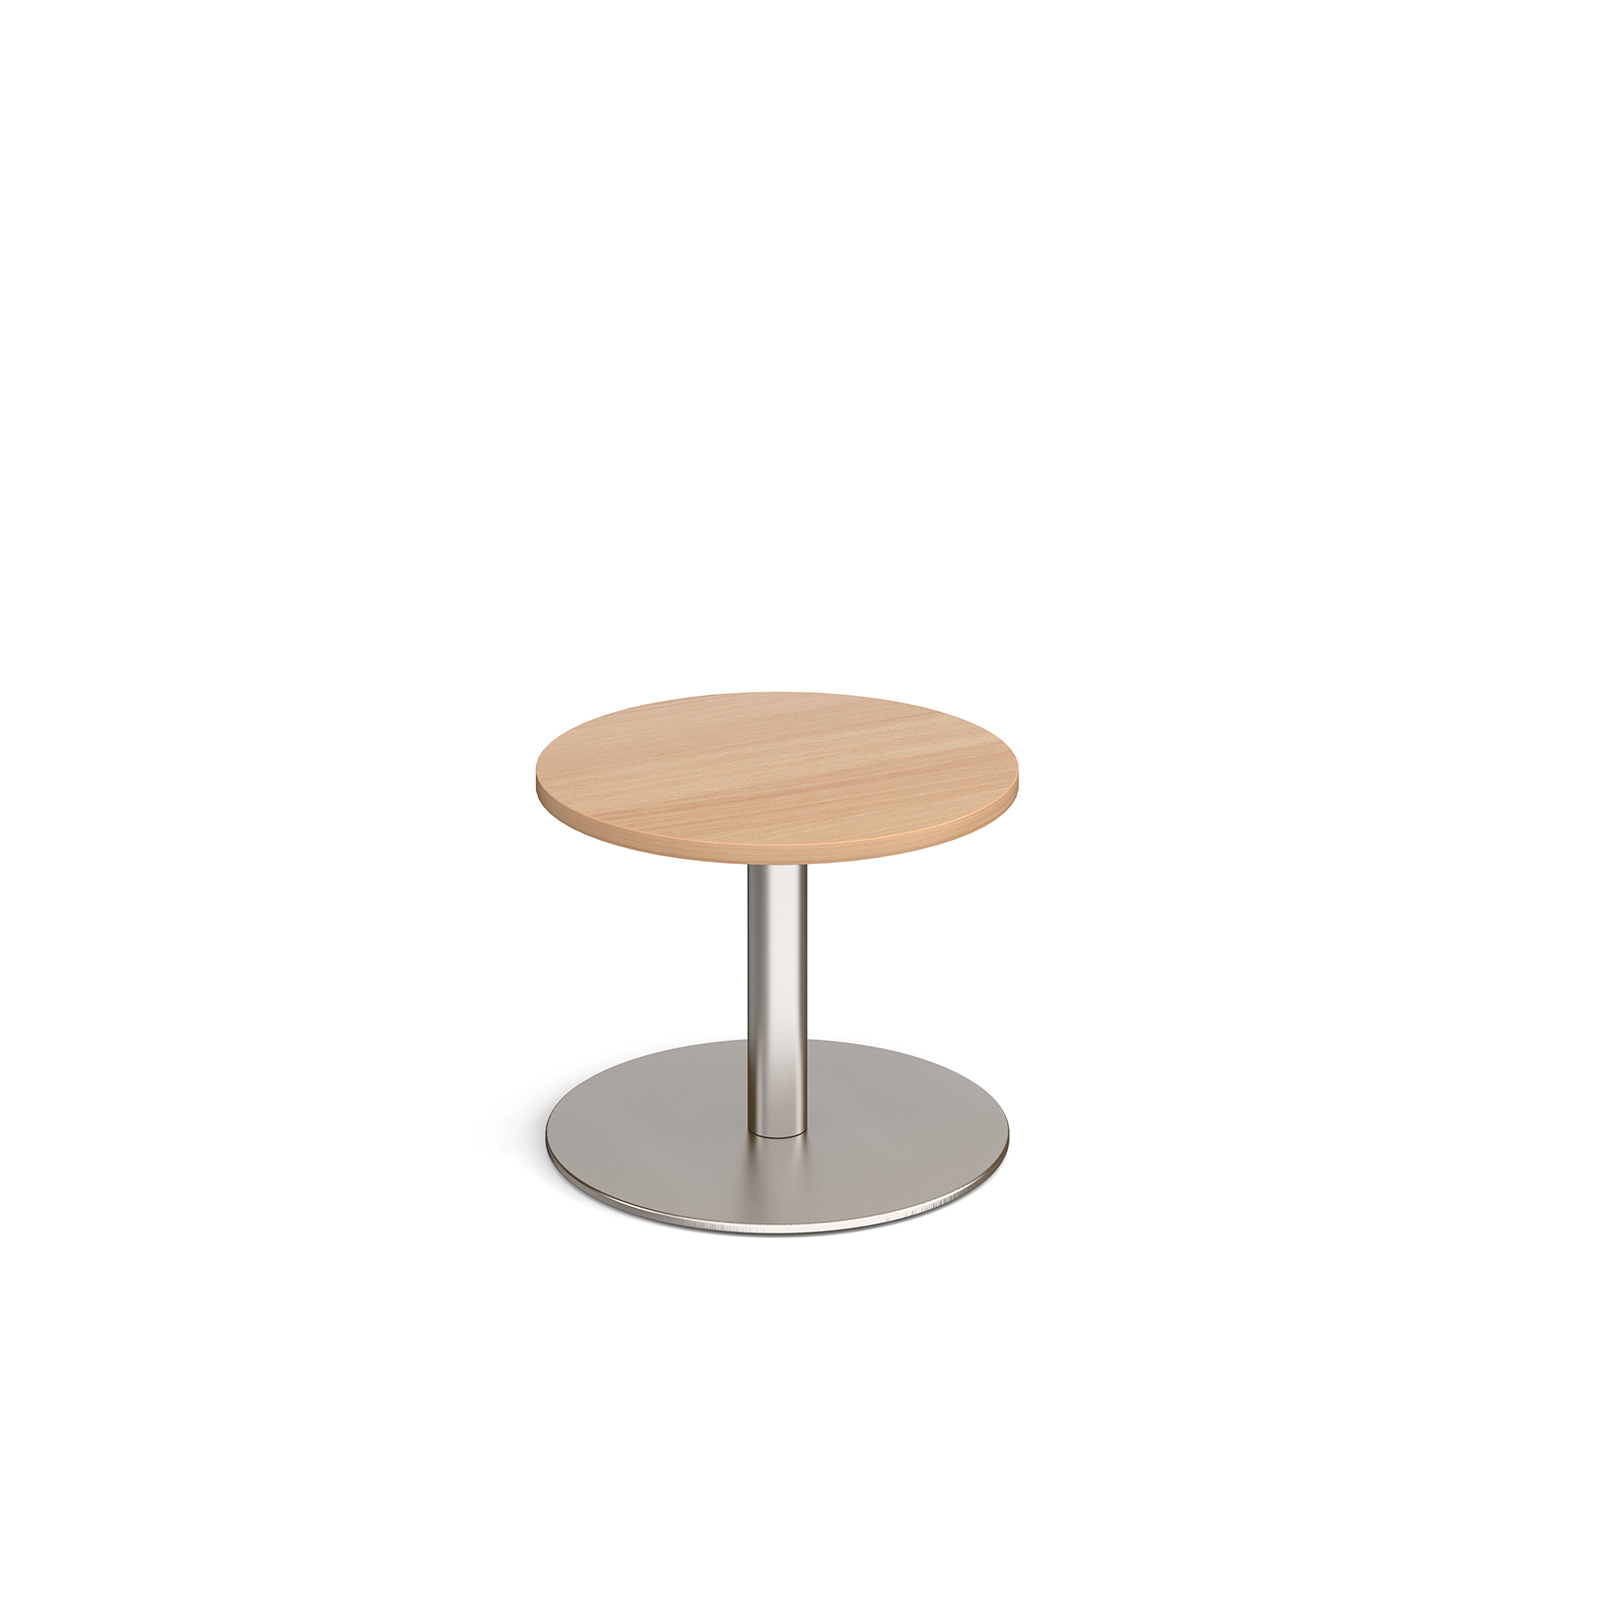 Coffee Monza circular coffee table with flat round base